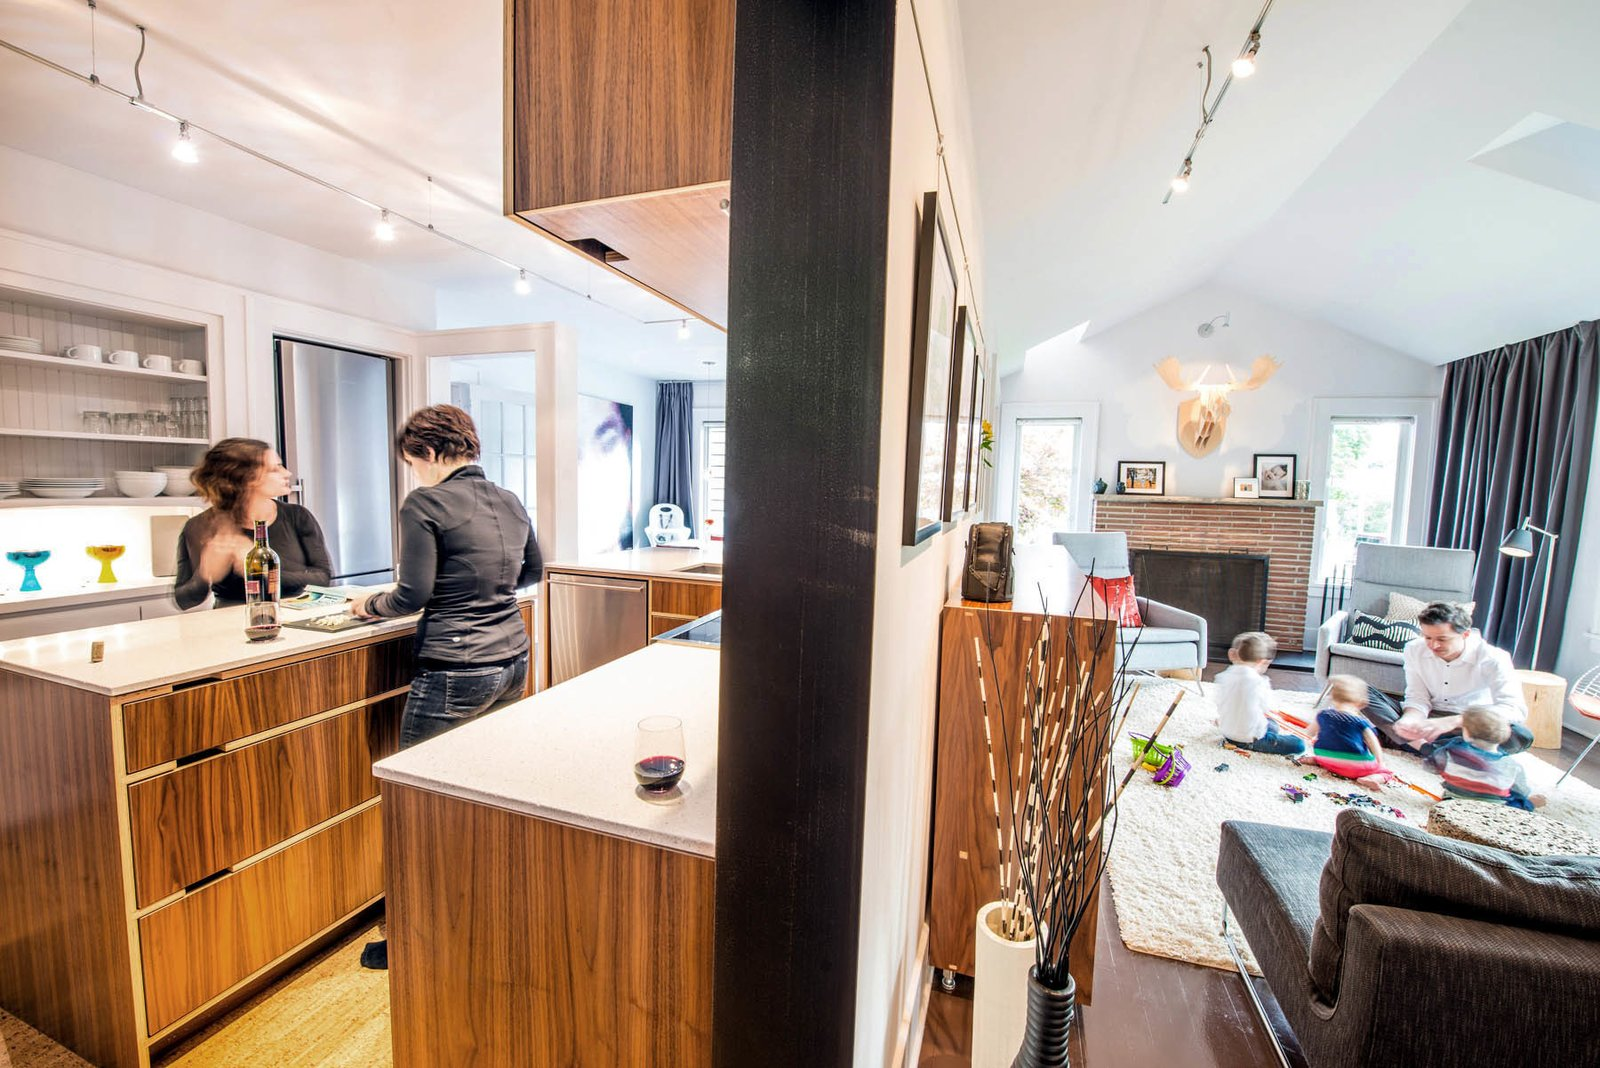 The Imhoffs saved money by serving as their own general contractor and doing much of the renovation work themselves. Transformative House Renovation in Seattle - Photo 3 of 7